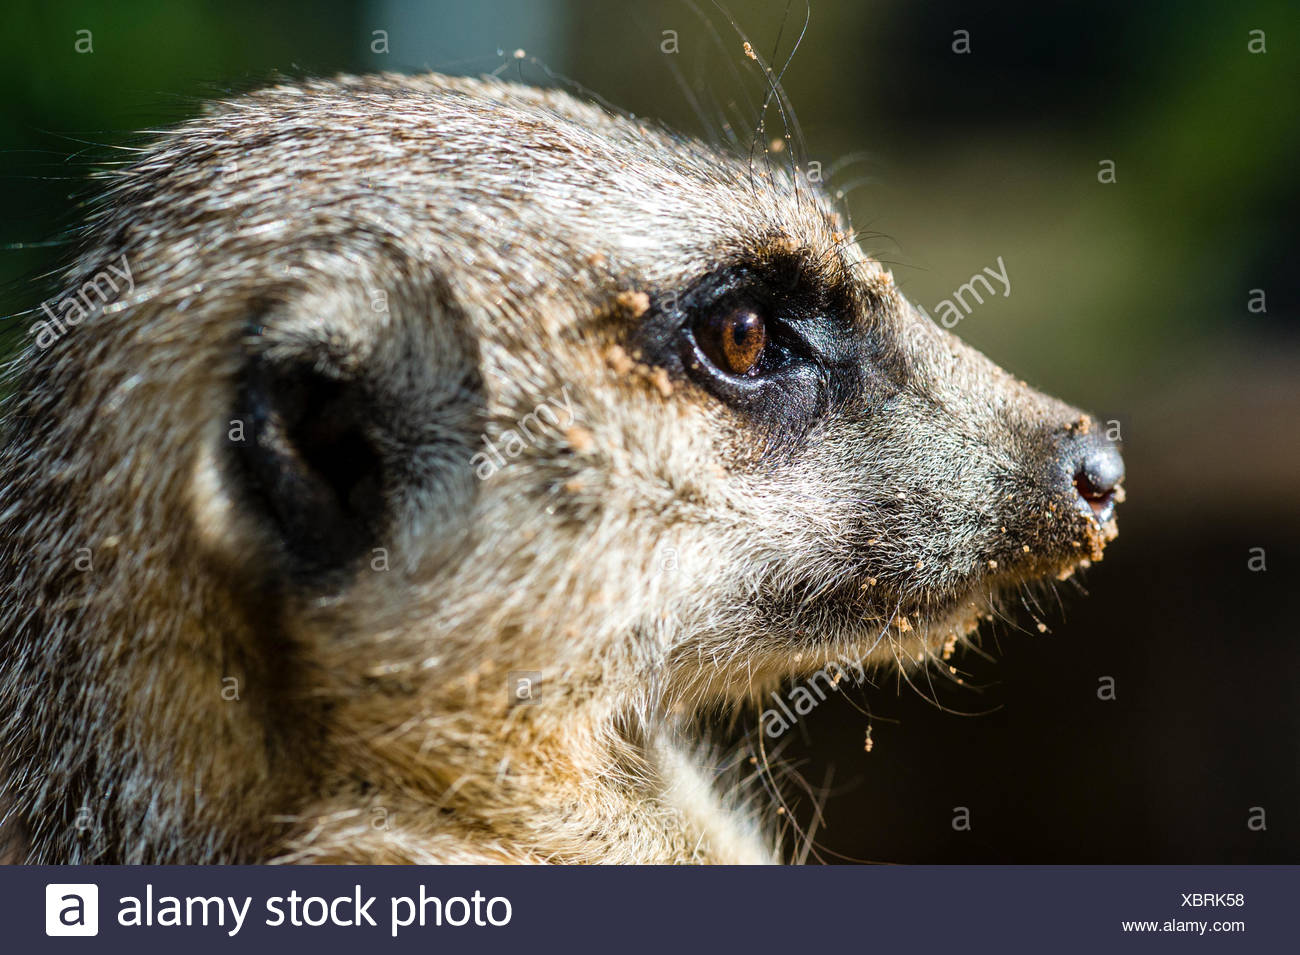 The eye of a Meerkat focussed on something in the distance. - Stock Image